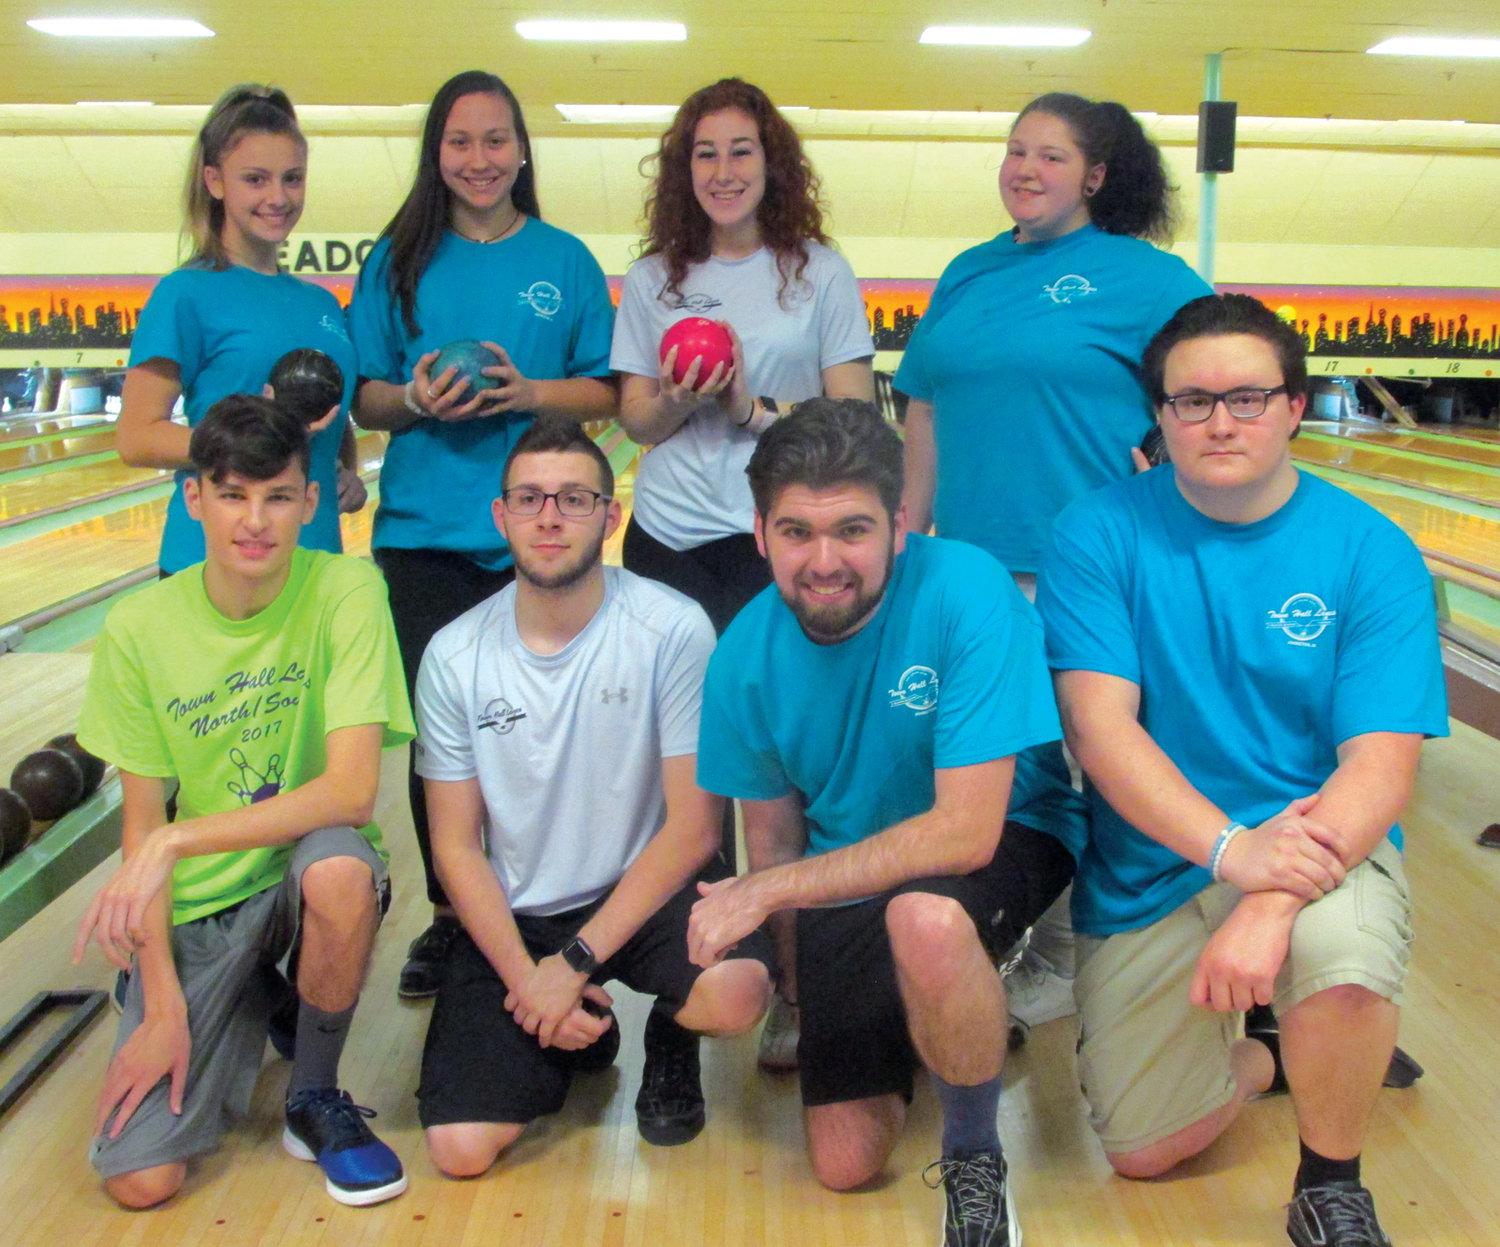 TALENTED TROOP: Among those Johnston residents who represented Town Hall Lanes in the recent State Individual/Doubles Championships in Warwick are, in front from left: Nicholas Muscatelli, Gene Potter, Adam Manocchio and Zachary Simonelli. Top: Megan Ranucci, Stephanie Bruno, Mia Femino and Lisa DeDouza.